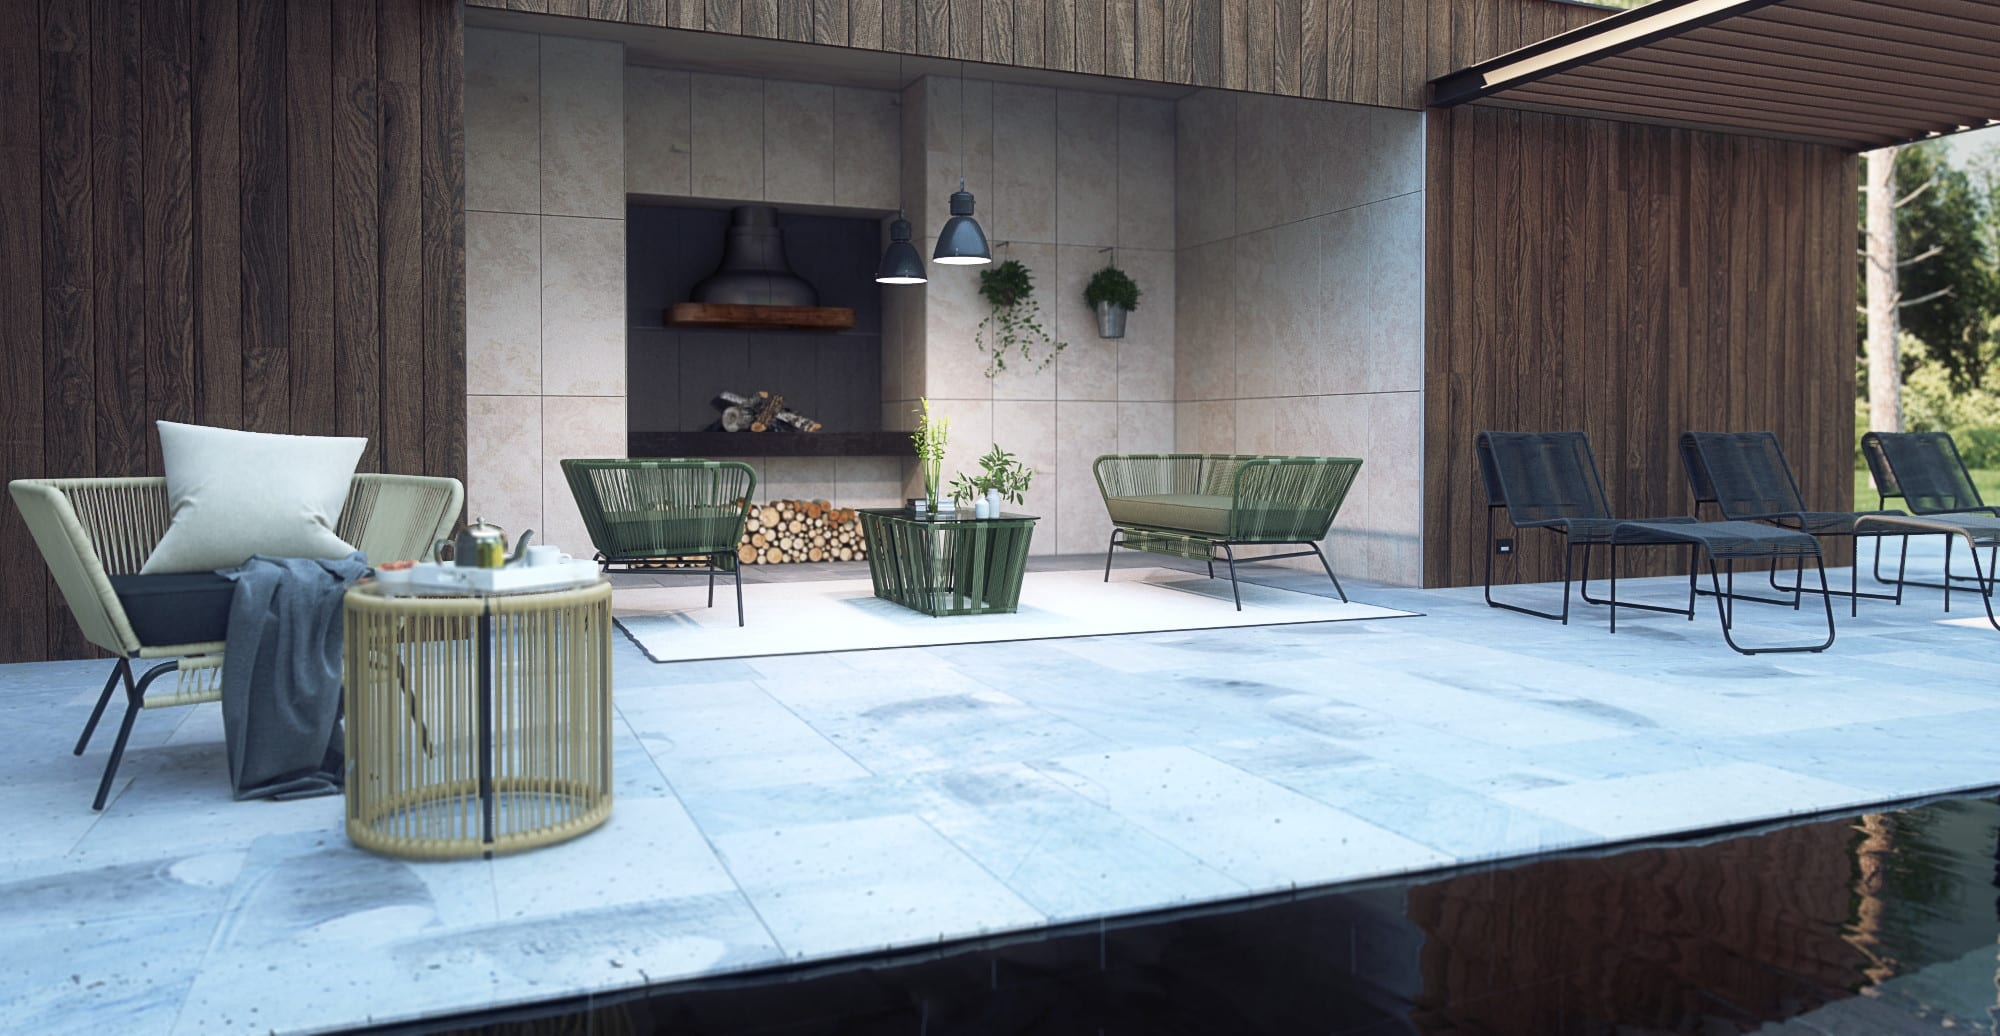 Small Outdoor Setting Part - 37: Small Tenerife 3 Piece Outdoor Setting 2x Dining ...